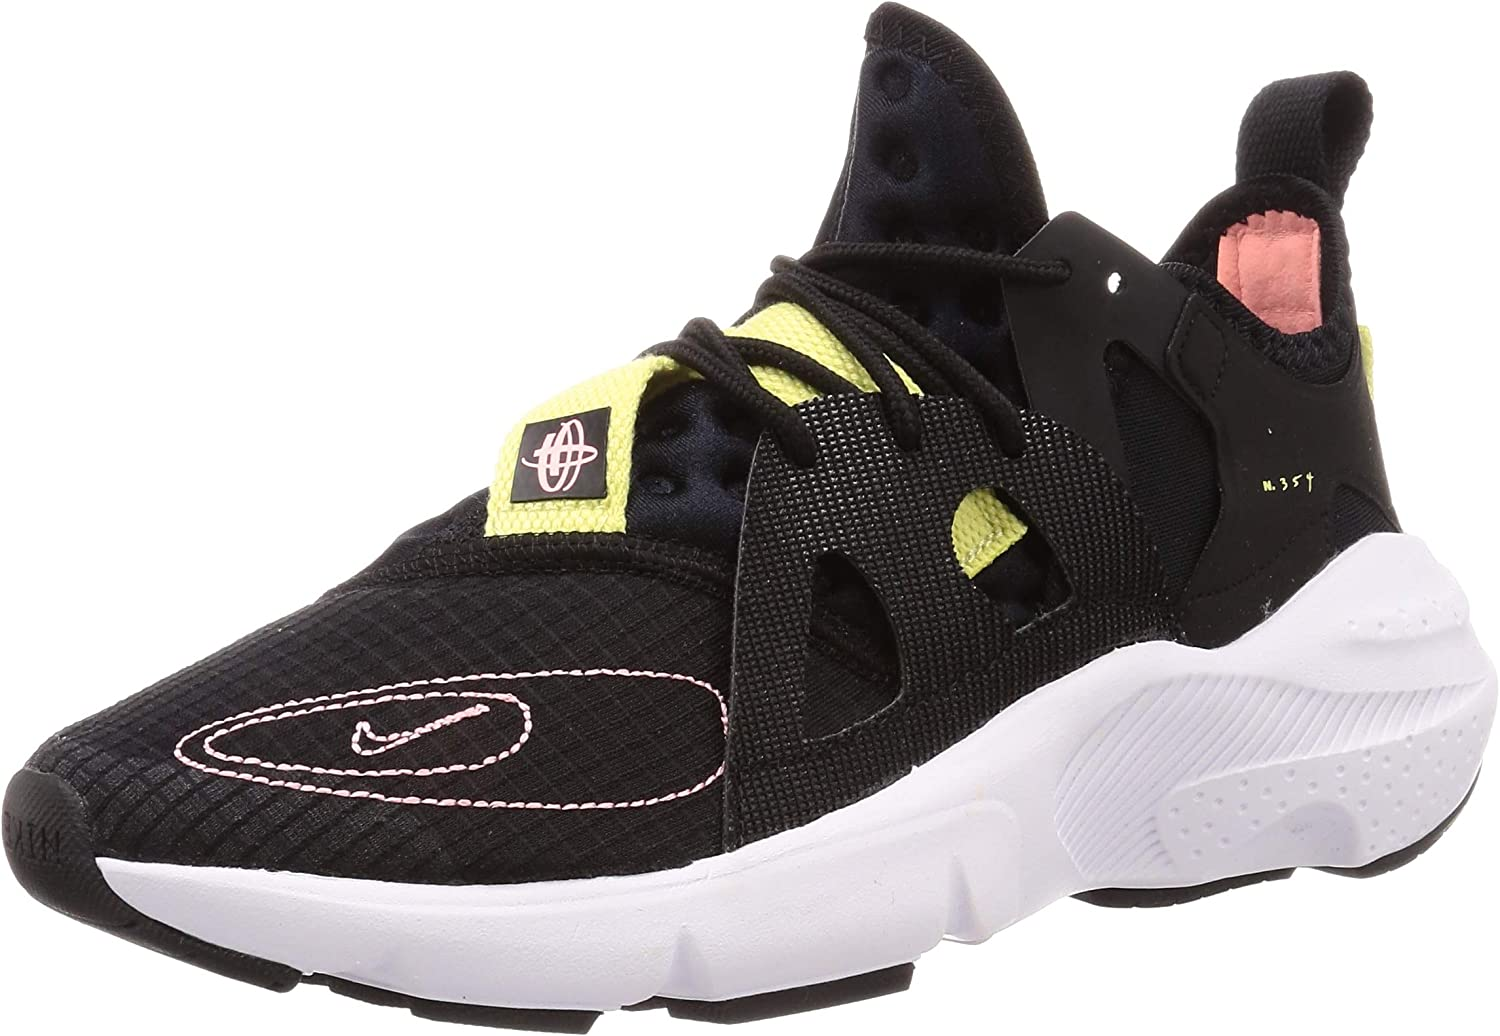 Nike Mens Huarache Type Lifestyle Workout Running Shoes